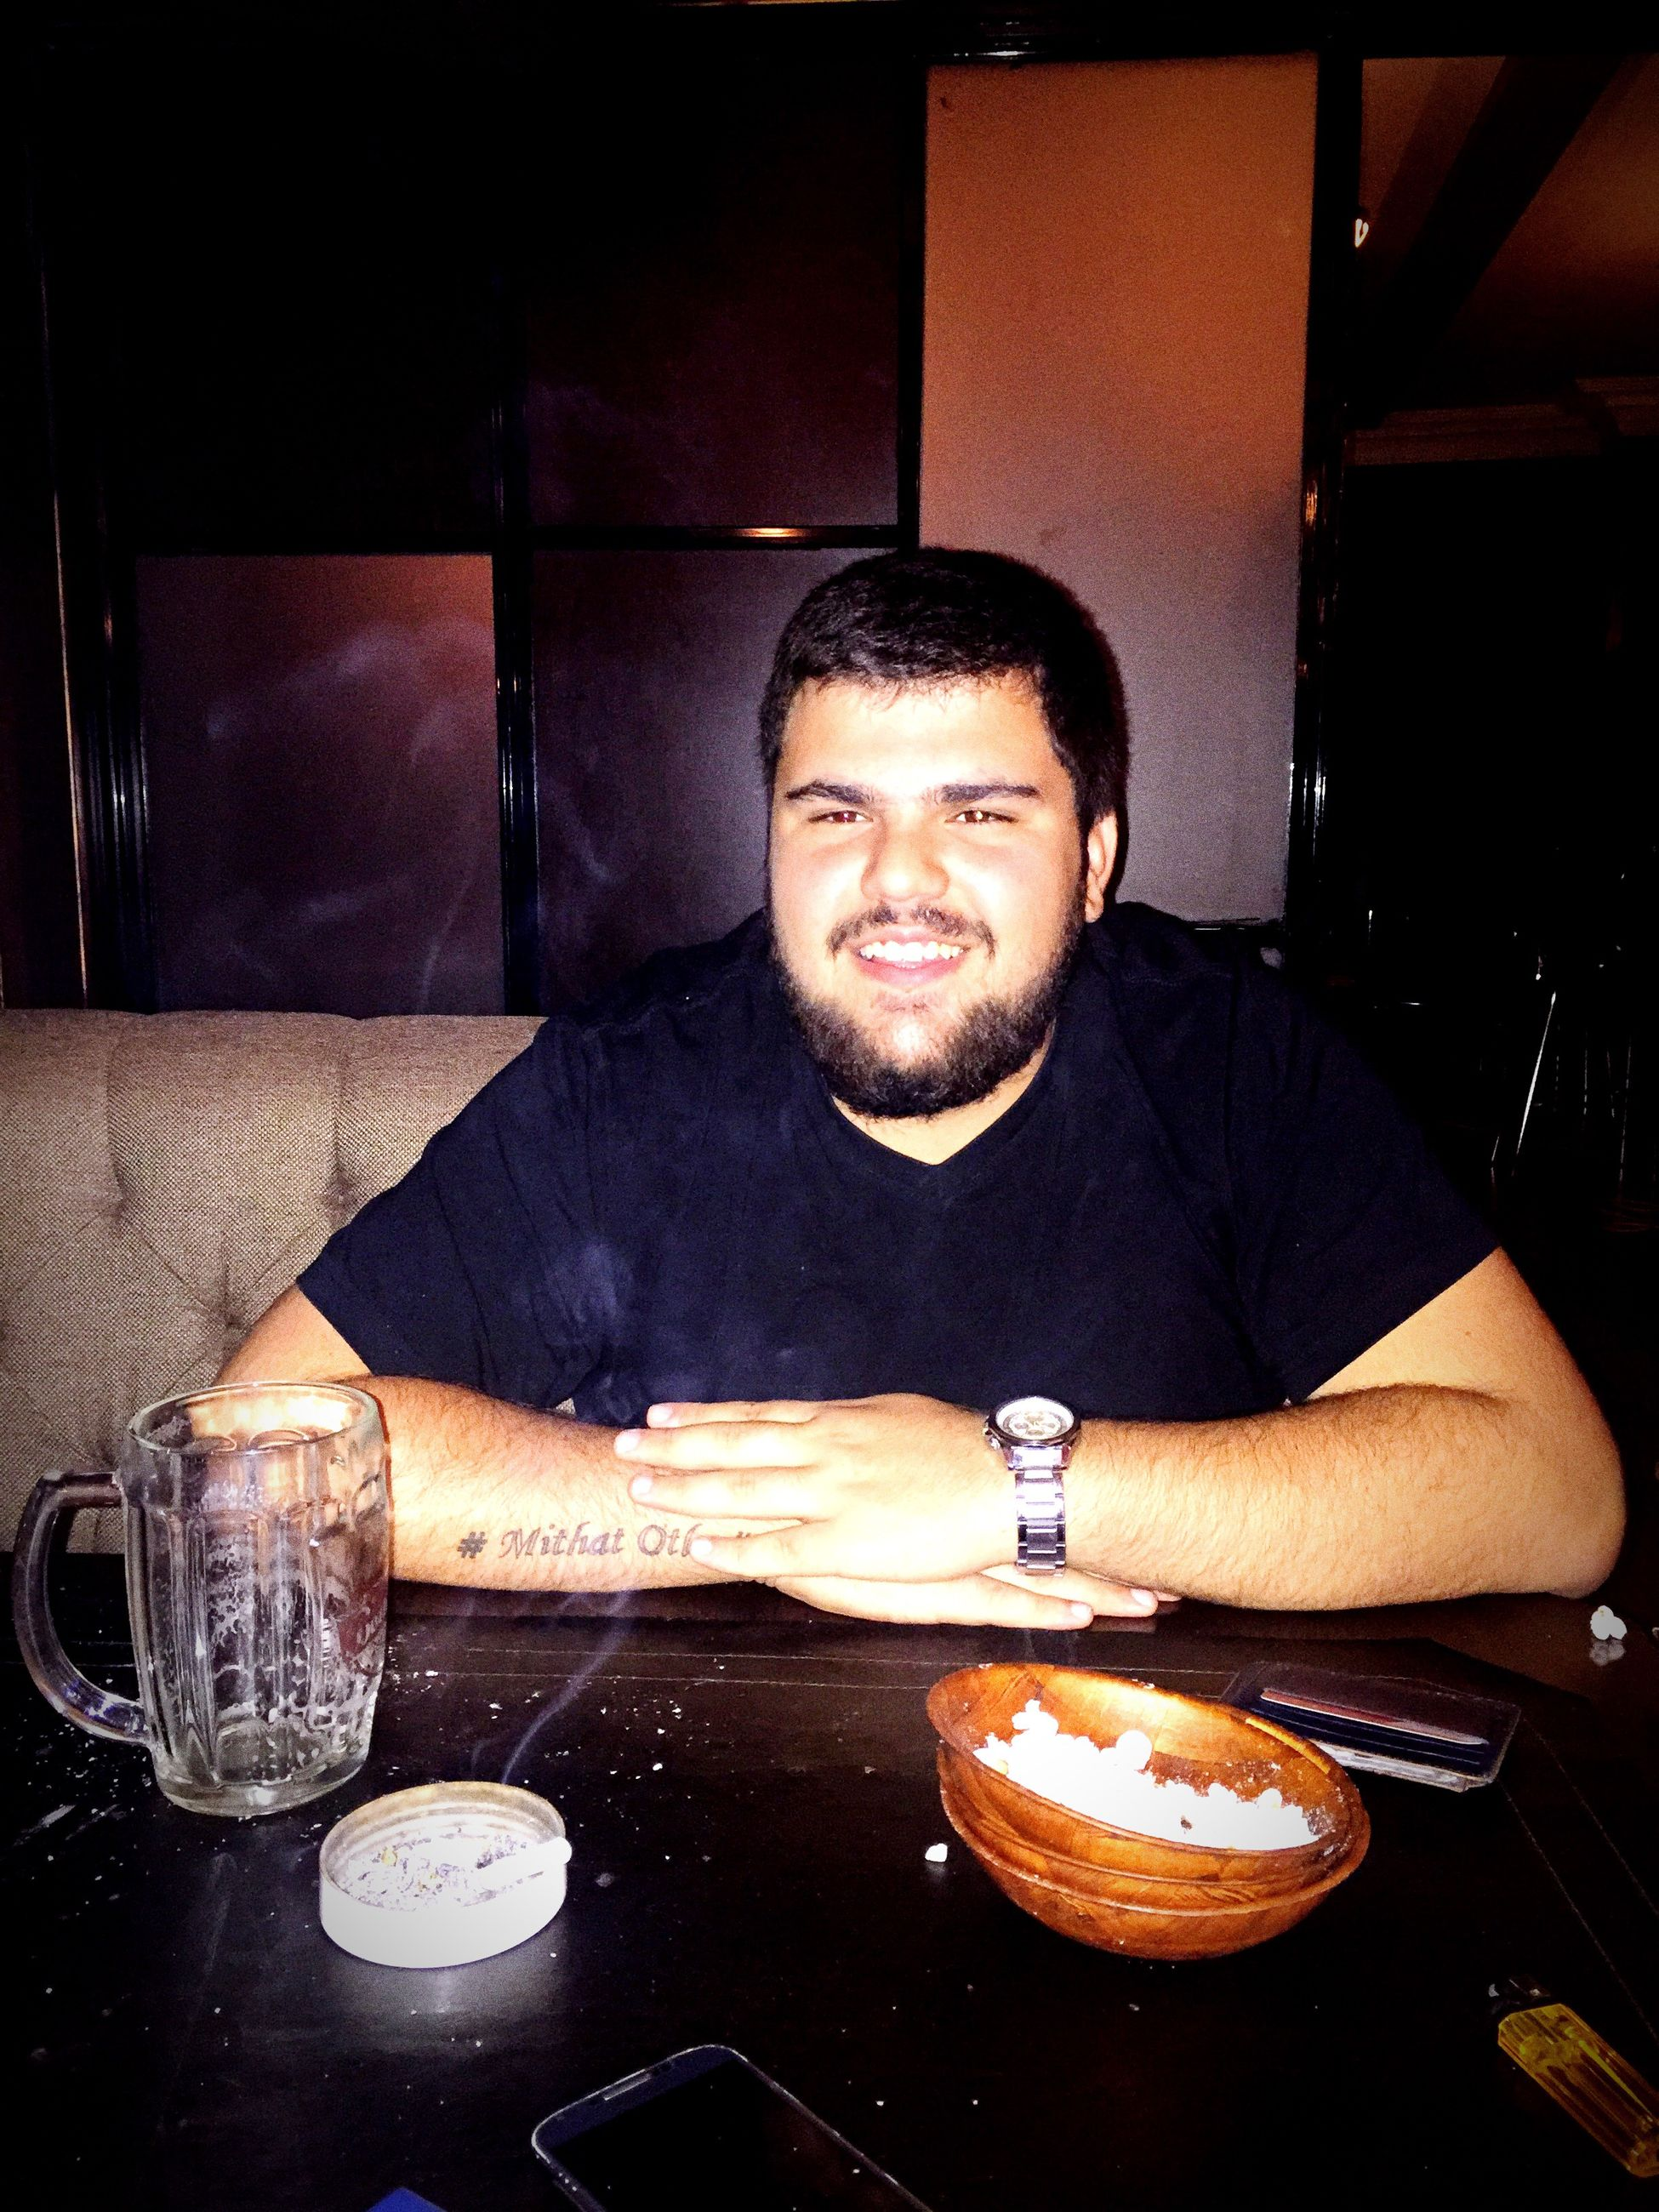 sitting, indoors, food and drink, illuminated, freshness, front view, looking at camera, casual clothing, person, young adult